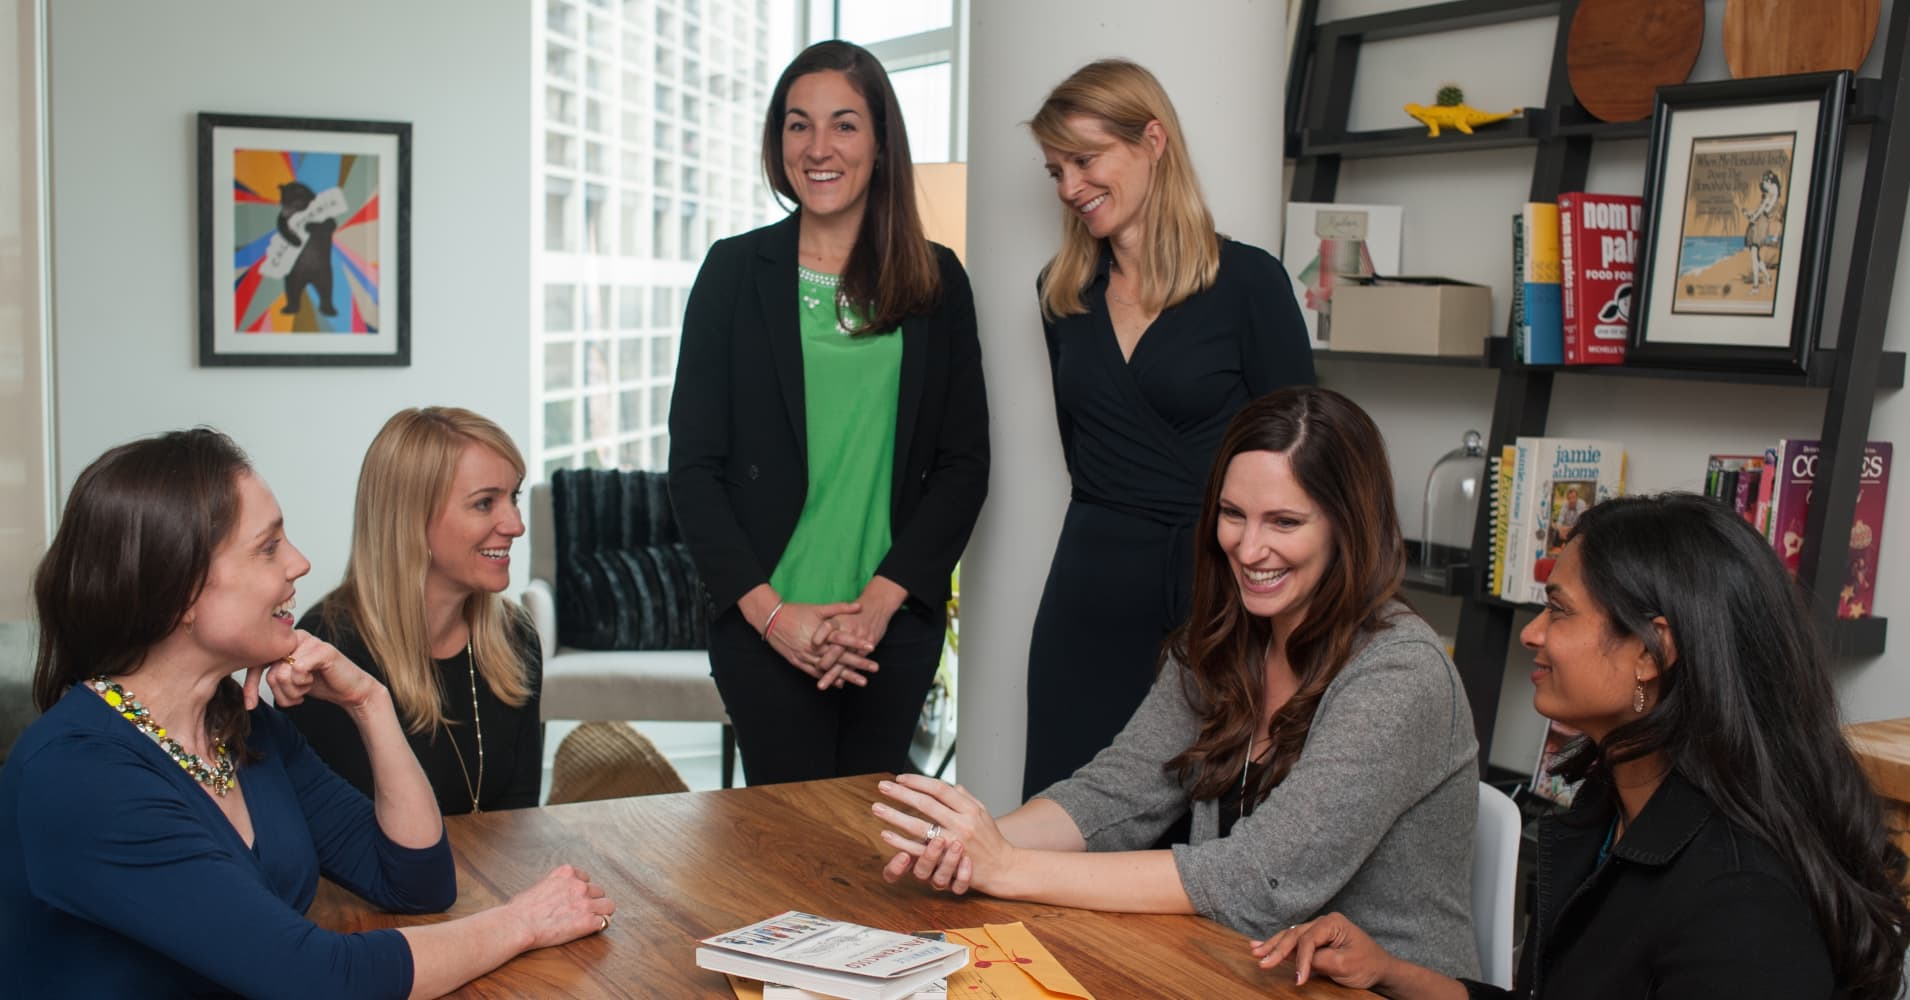 The founding partners of #Angels (L to R): Chloe Sladden, April Underwood, Jessica Verrilli, Katie Stanton, Jana Messerschmidt and Vijaya Gadde